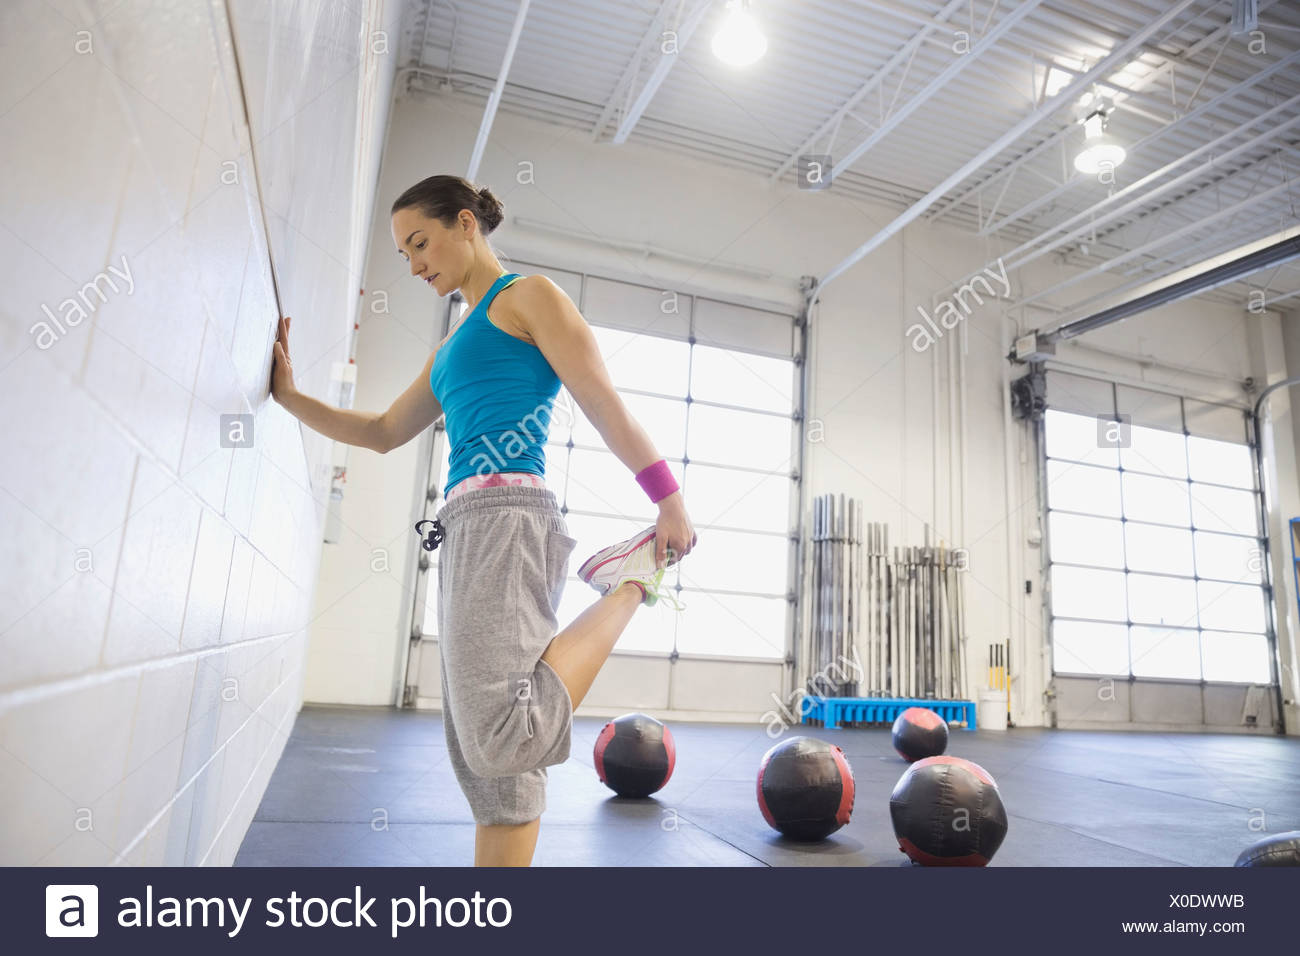 Woman stretching legs in gym - Stock Image